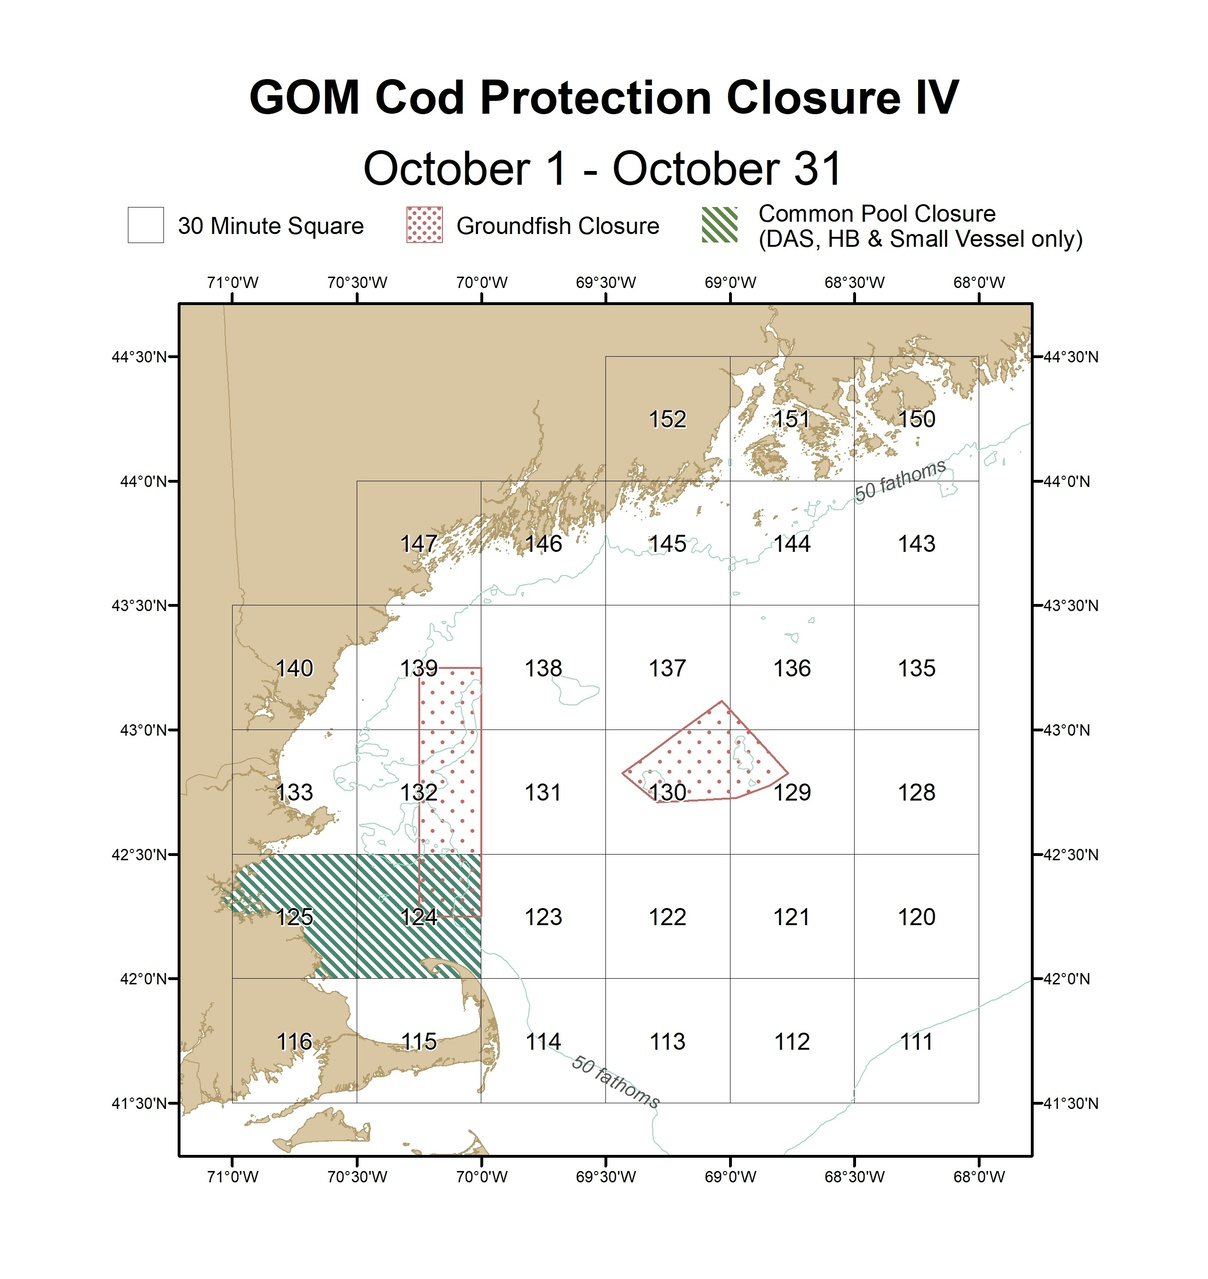 GOM_Cod_Protection_Closure_IV.jpg